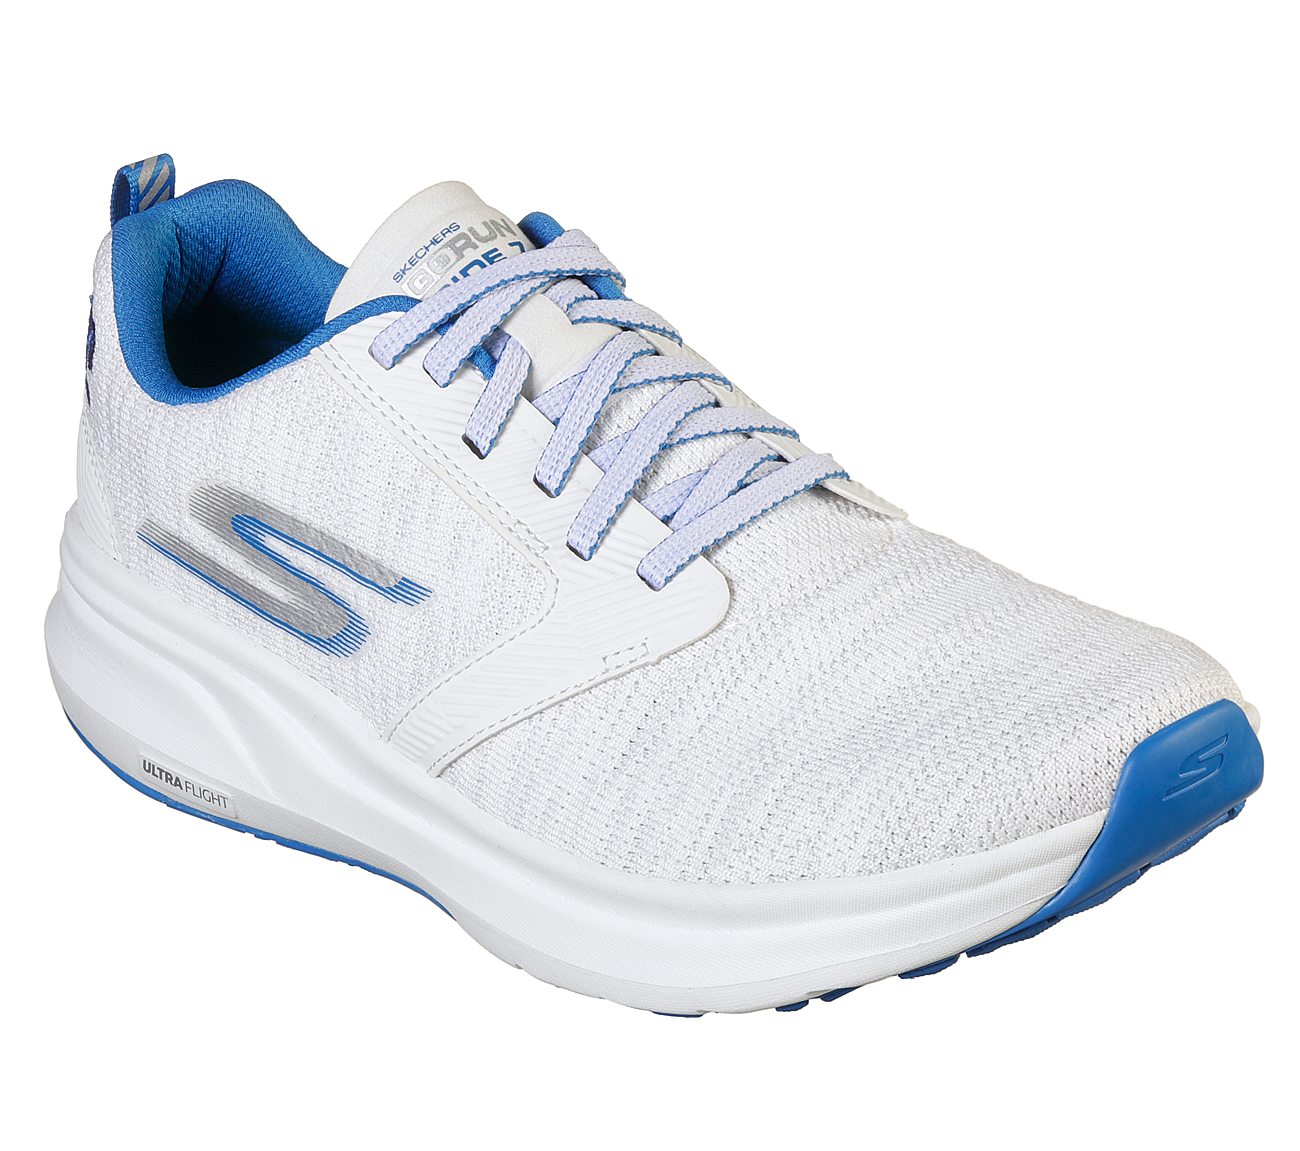 Buy SKECHERS Skechers GOrun Ride 7